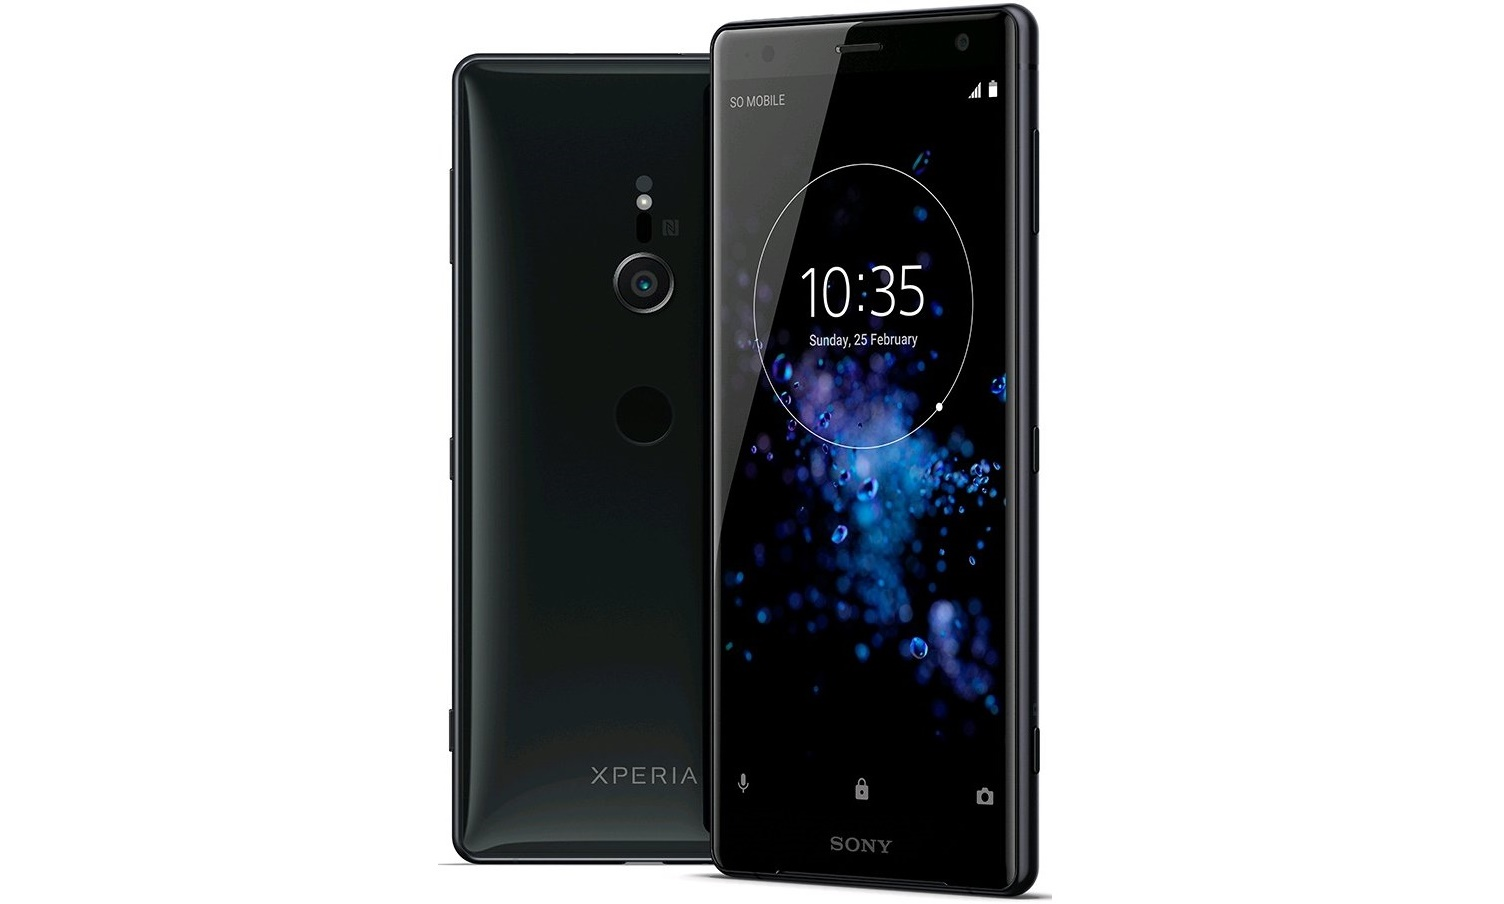 Sony Xperia XZ2 and XZ2 Compact Image and Specs